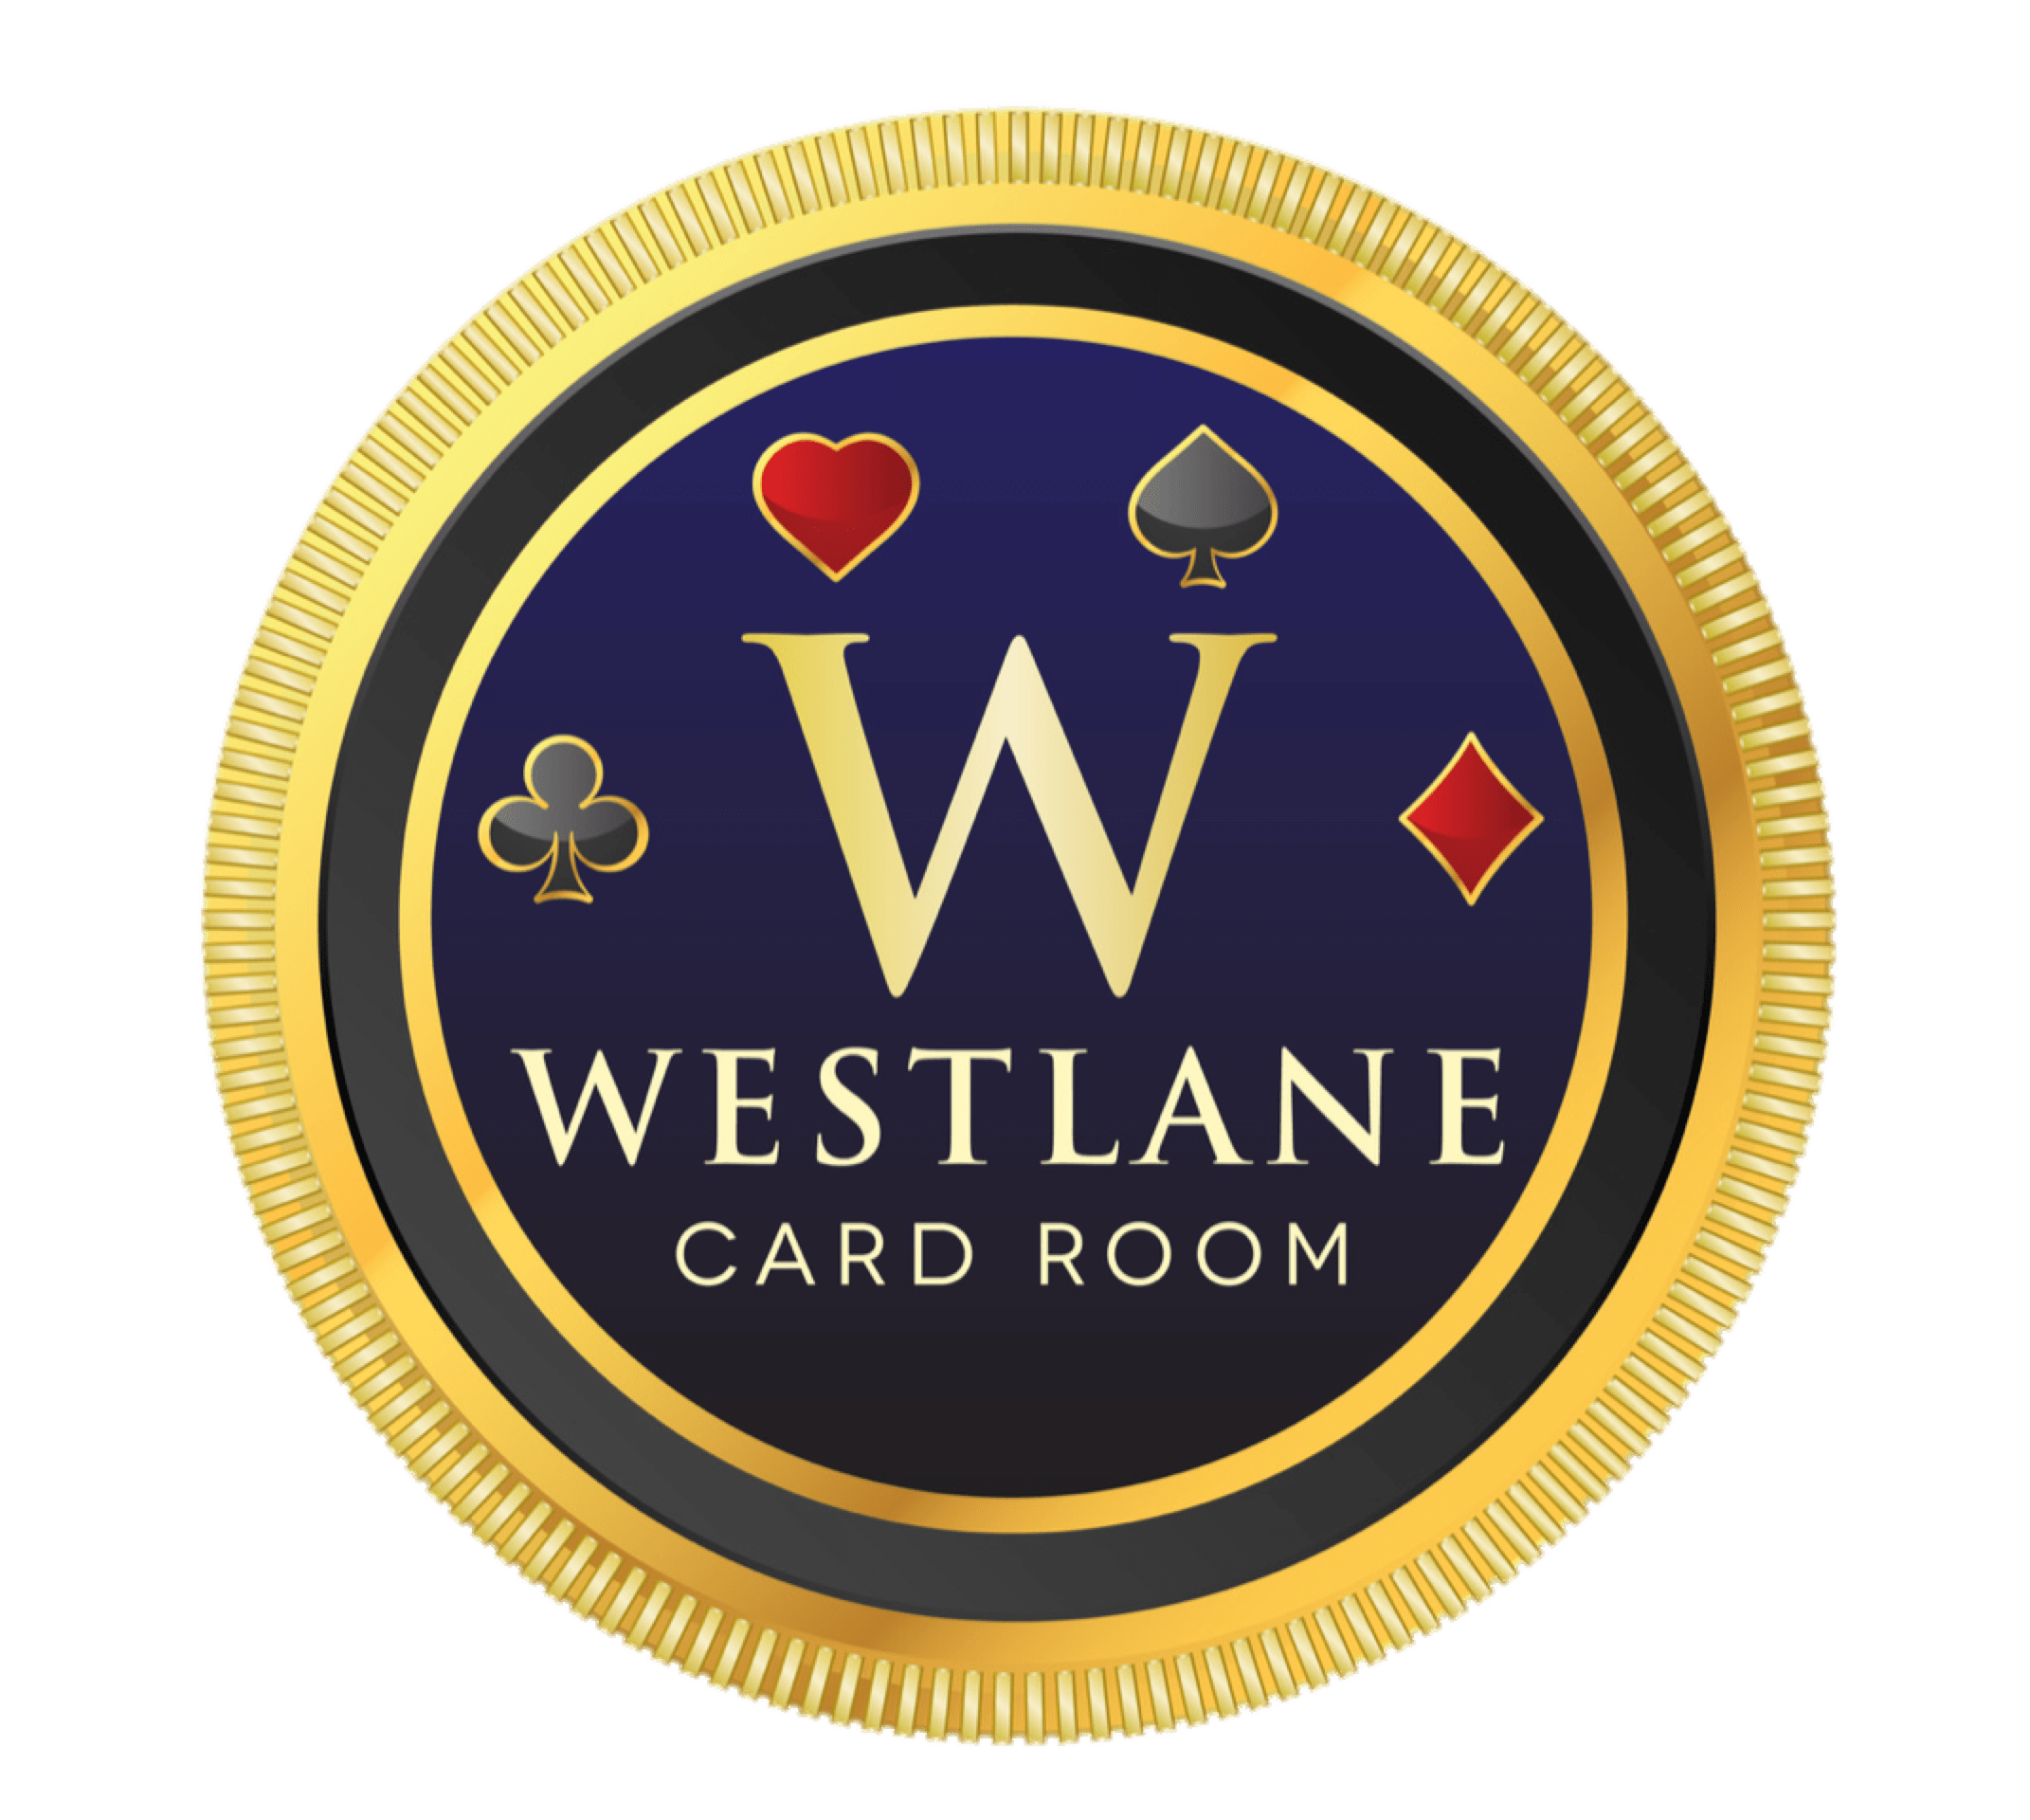 westlane card room logo